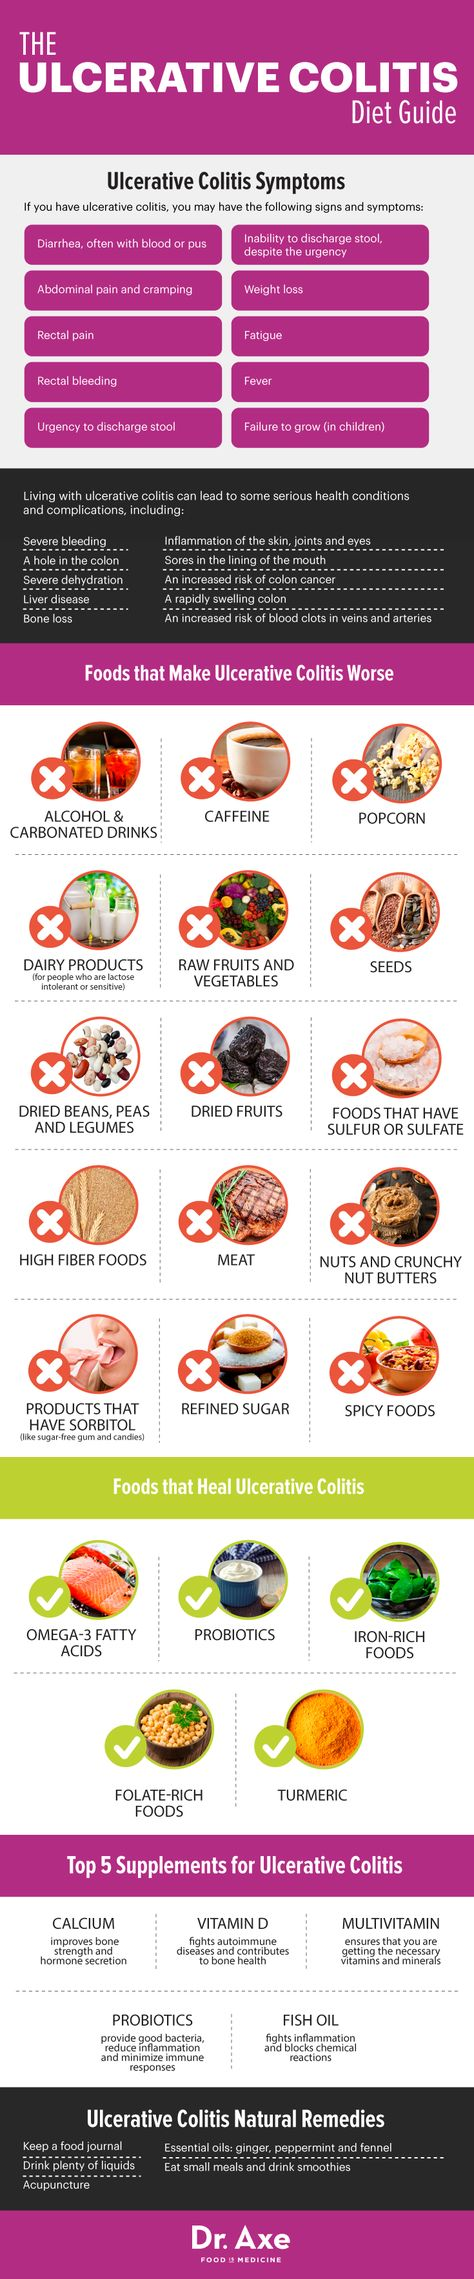 Ulcerative colitis diet manual - Dr. Axe http://www.draxe.com #health #holistic #natural